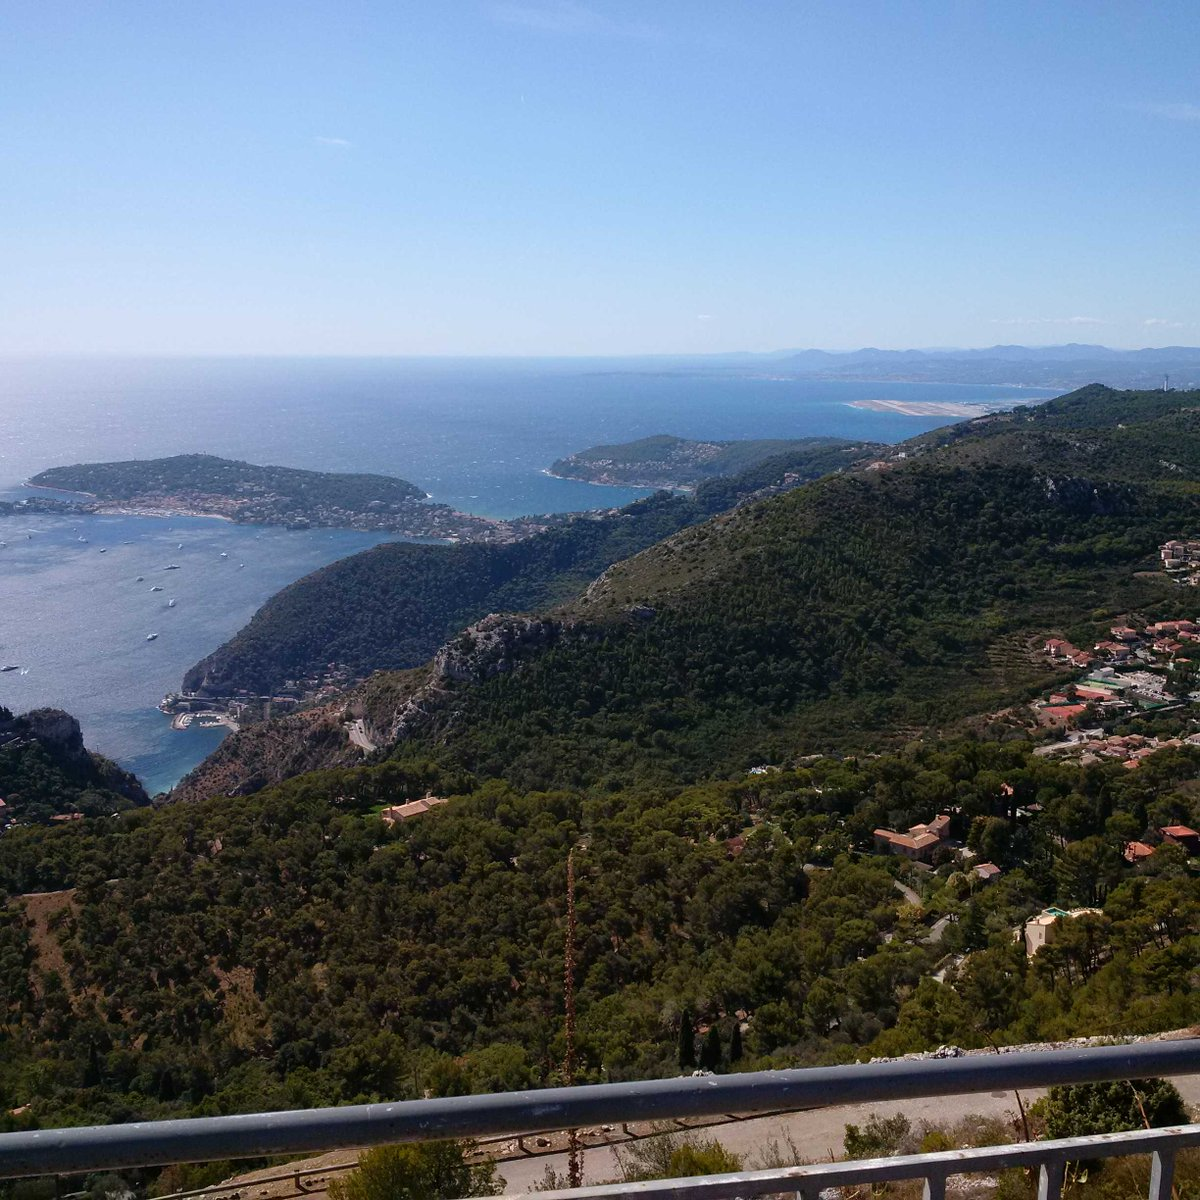 Great view from National Parc Grande Corniche of Cap Ferrat and #CotedAzurNow #CotedAzurFrance #FrenchMerveilles <br>http://pic.twitter.com/ZaJW7tclNg